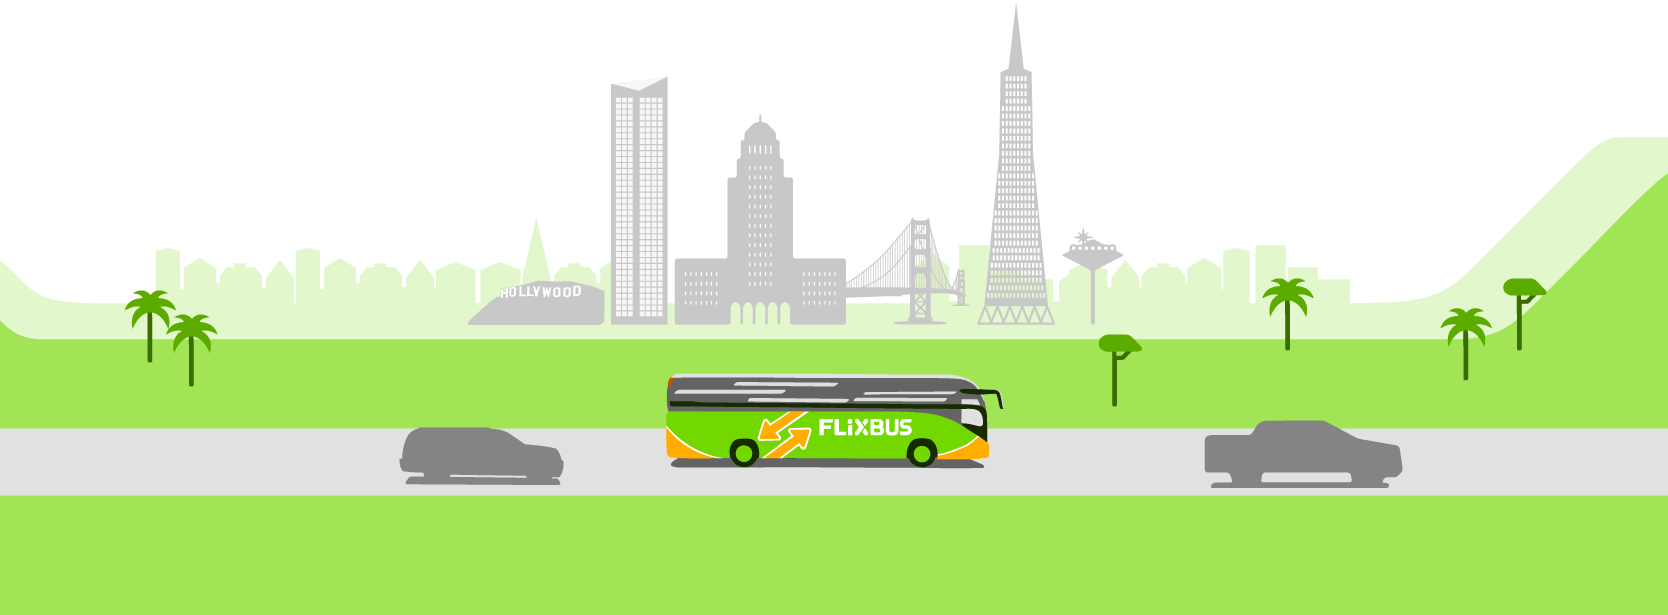 Current Travel Information Flixbus